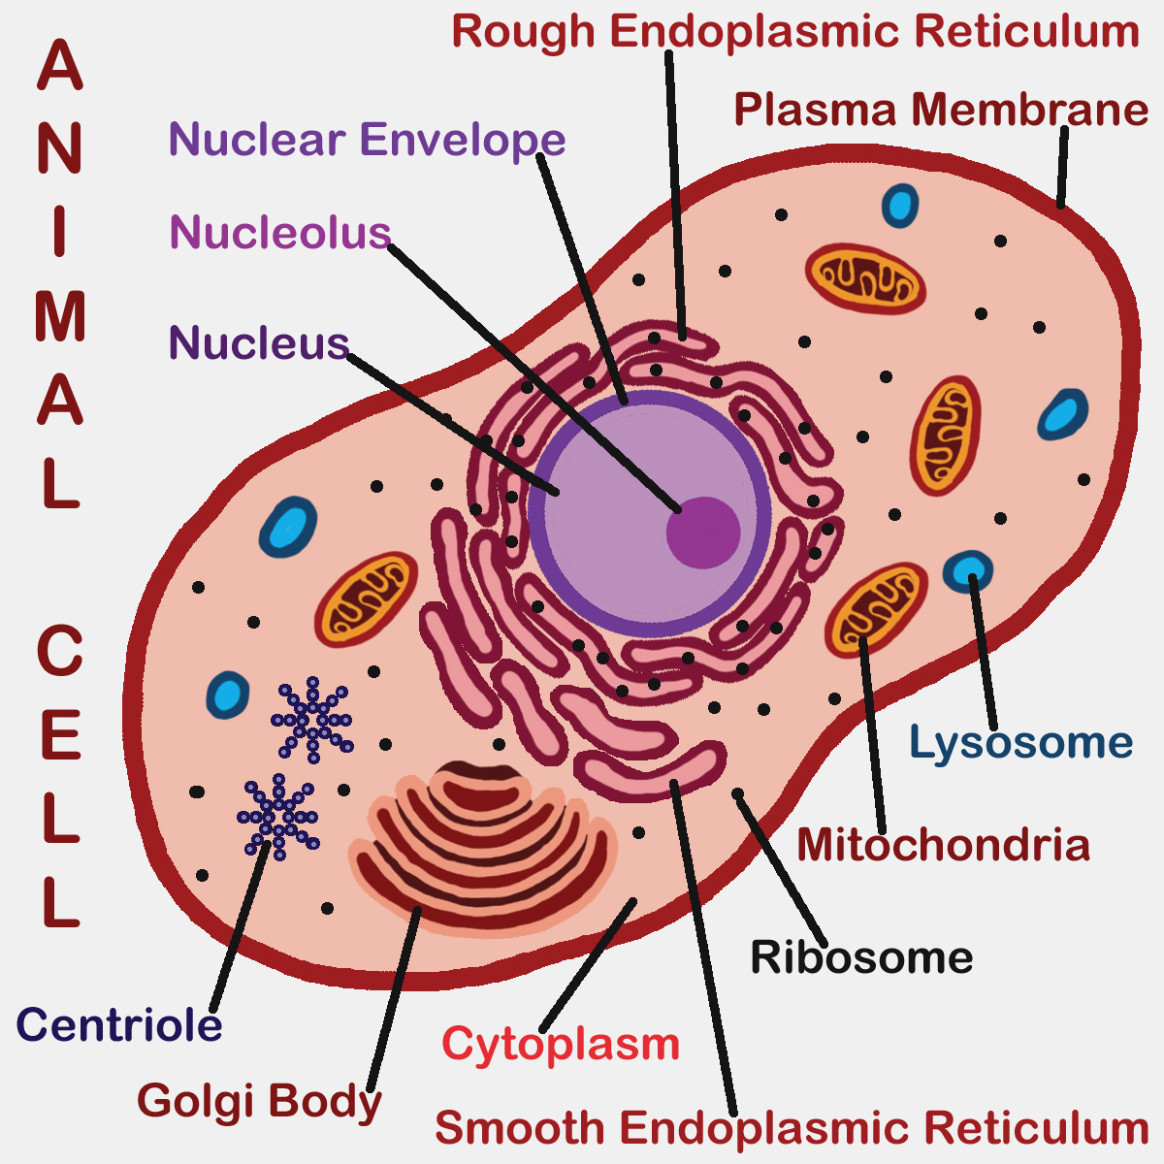 hight resolution of 1164x1164 drawing of animal cell animal cell drawing labeled the diagram animal cell drawing